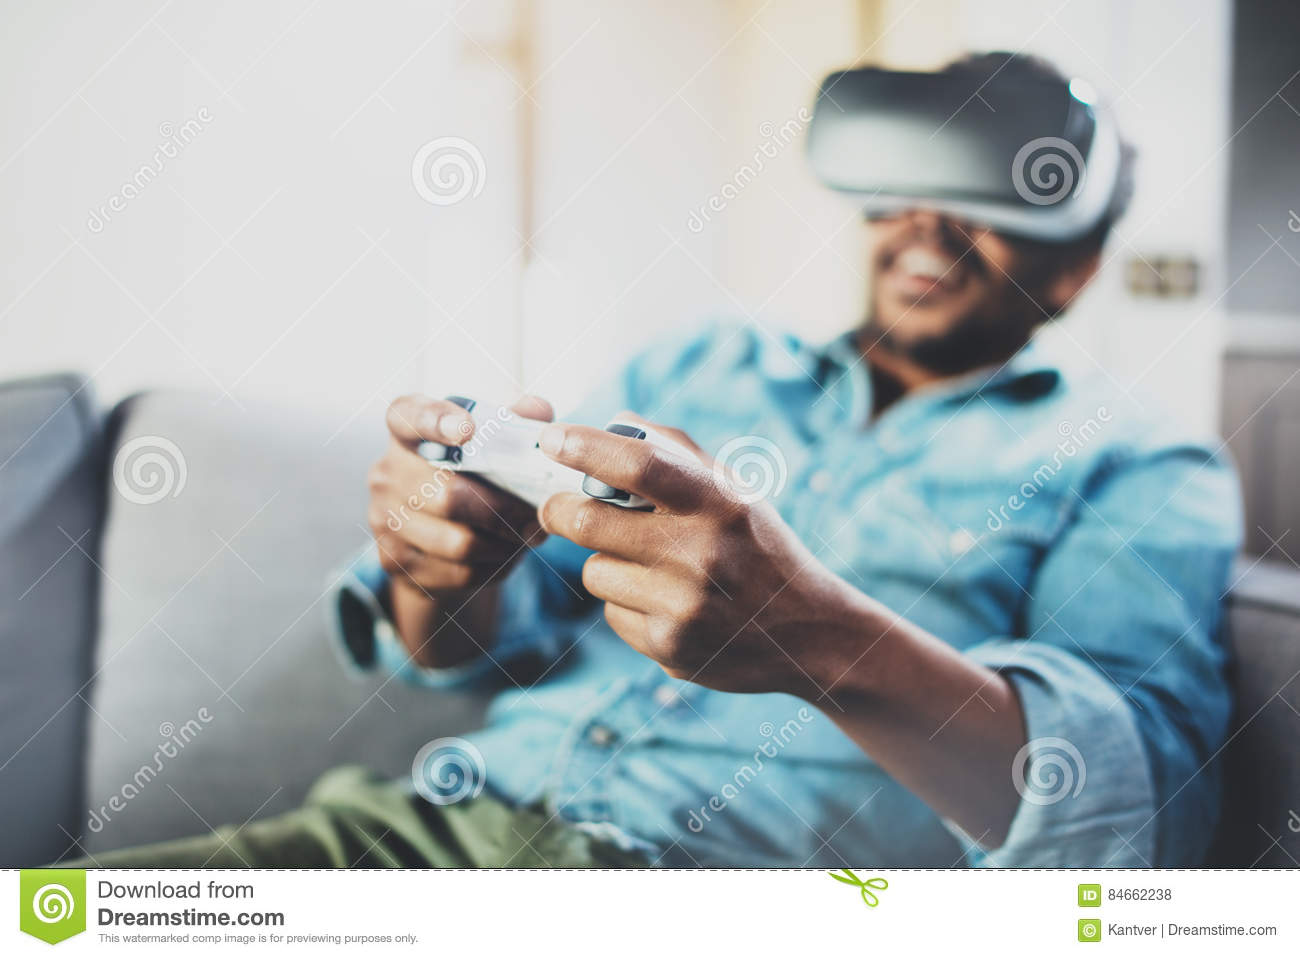 d04b3b94315 Smiling african man enjoying virtual reality glasses while sitting on sofa.Young  guy with vr headset or 3d spectacles and controller gamepad playing video  ...